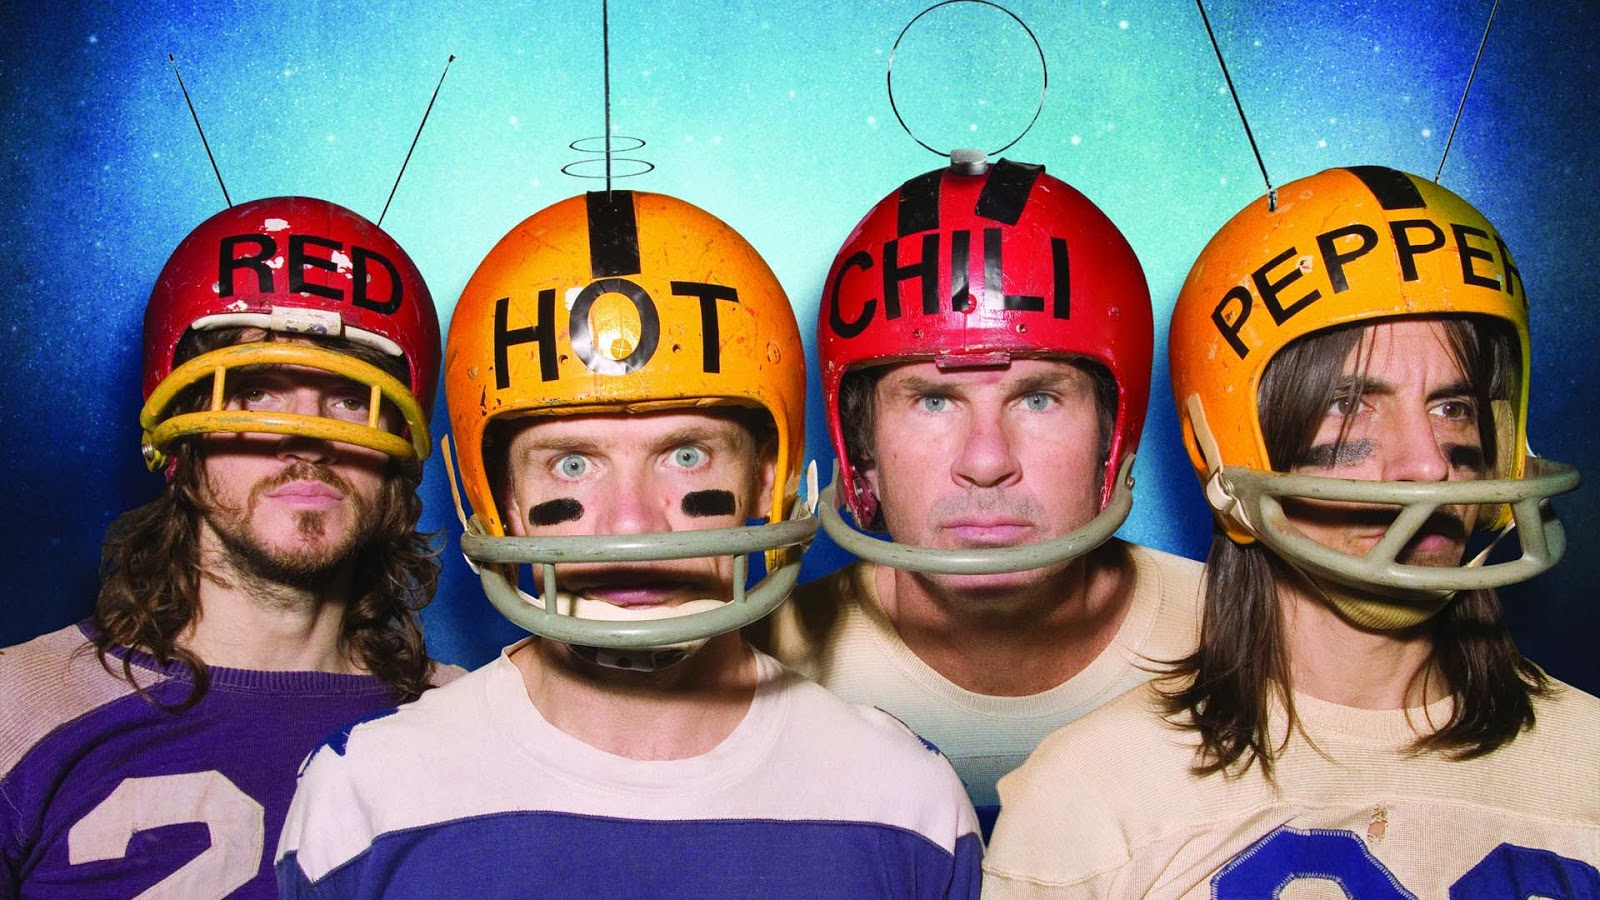 Red Hot Chili Peppers, Give it Away, Superbowl, Live, Song